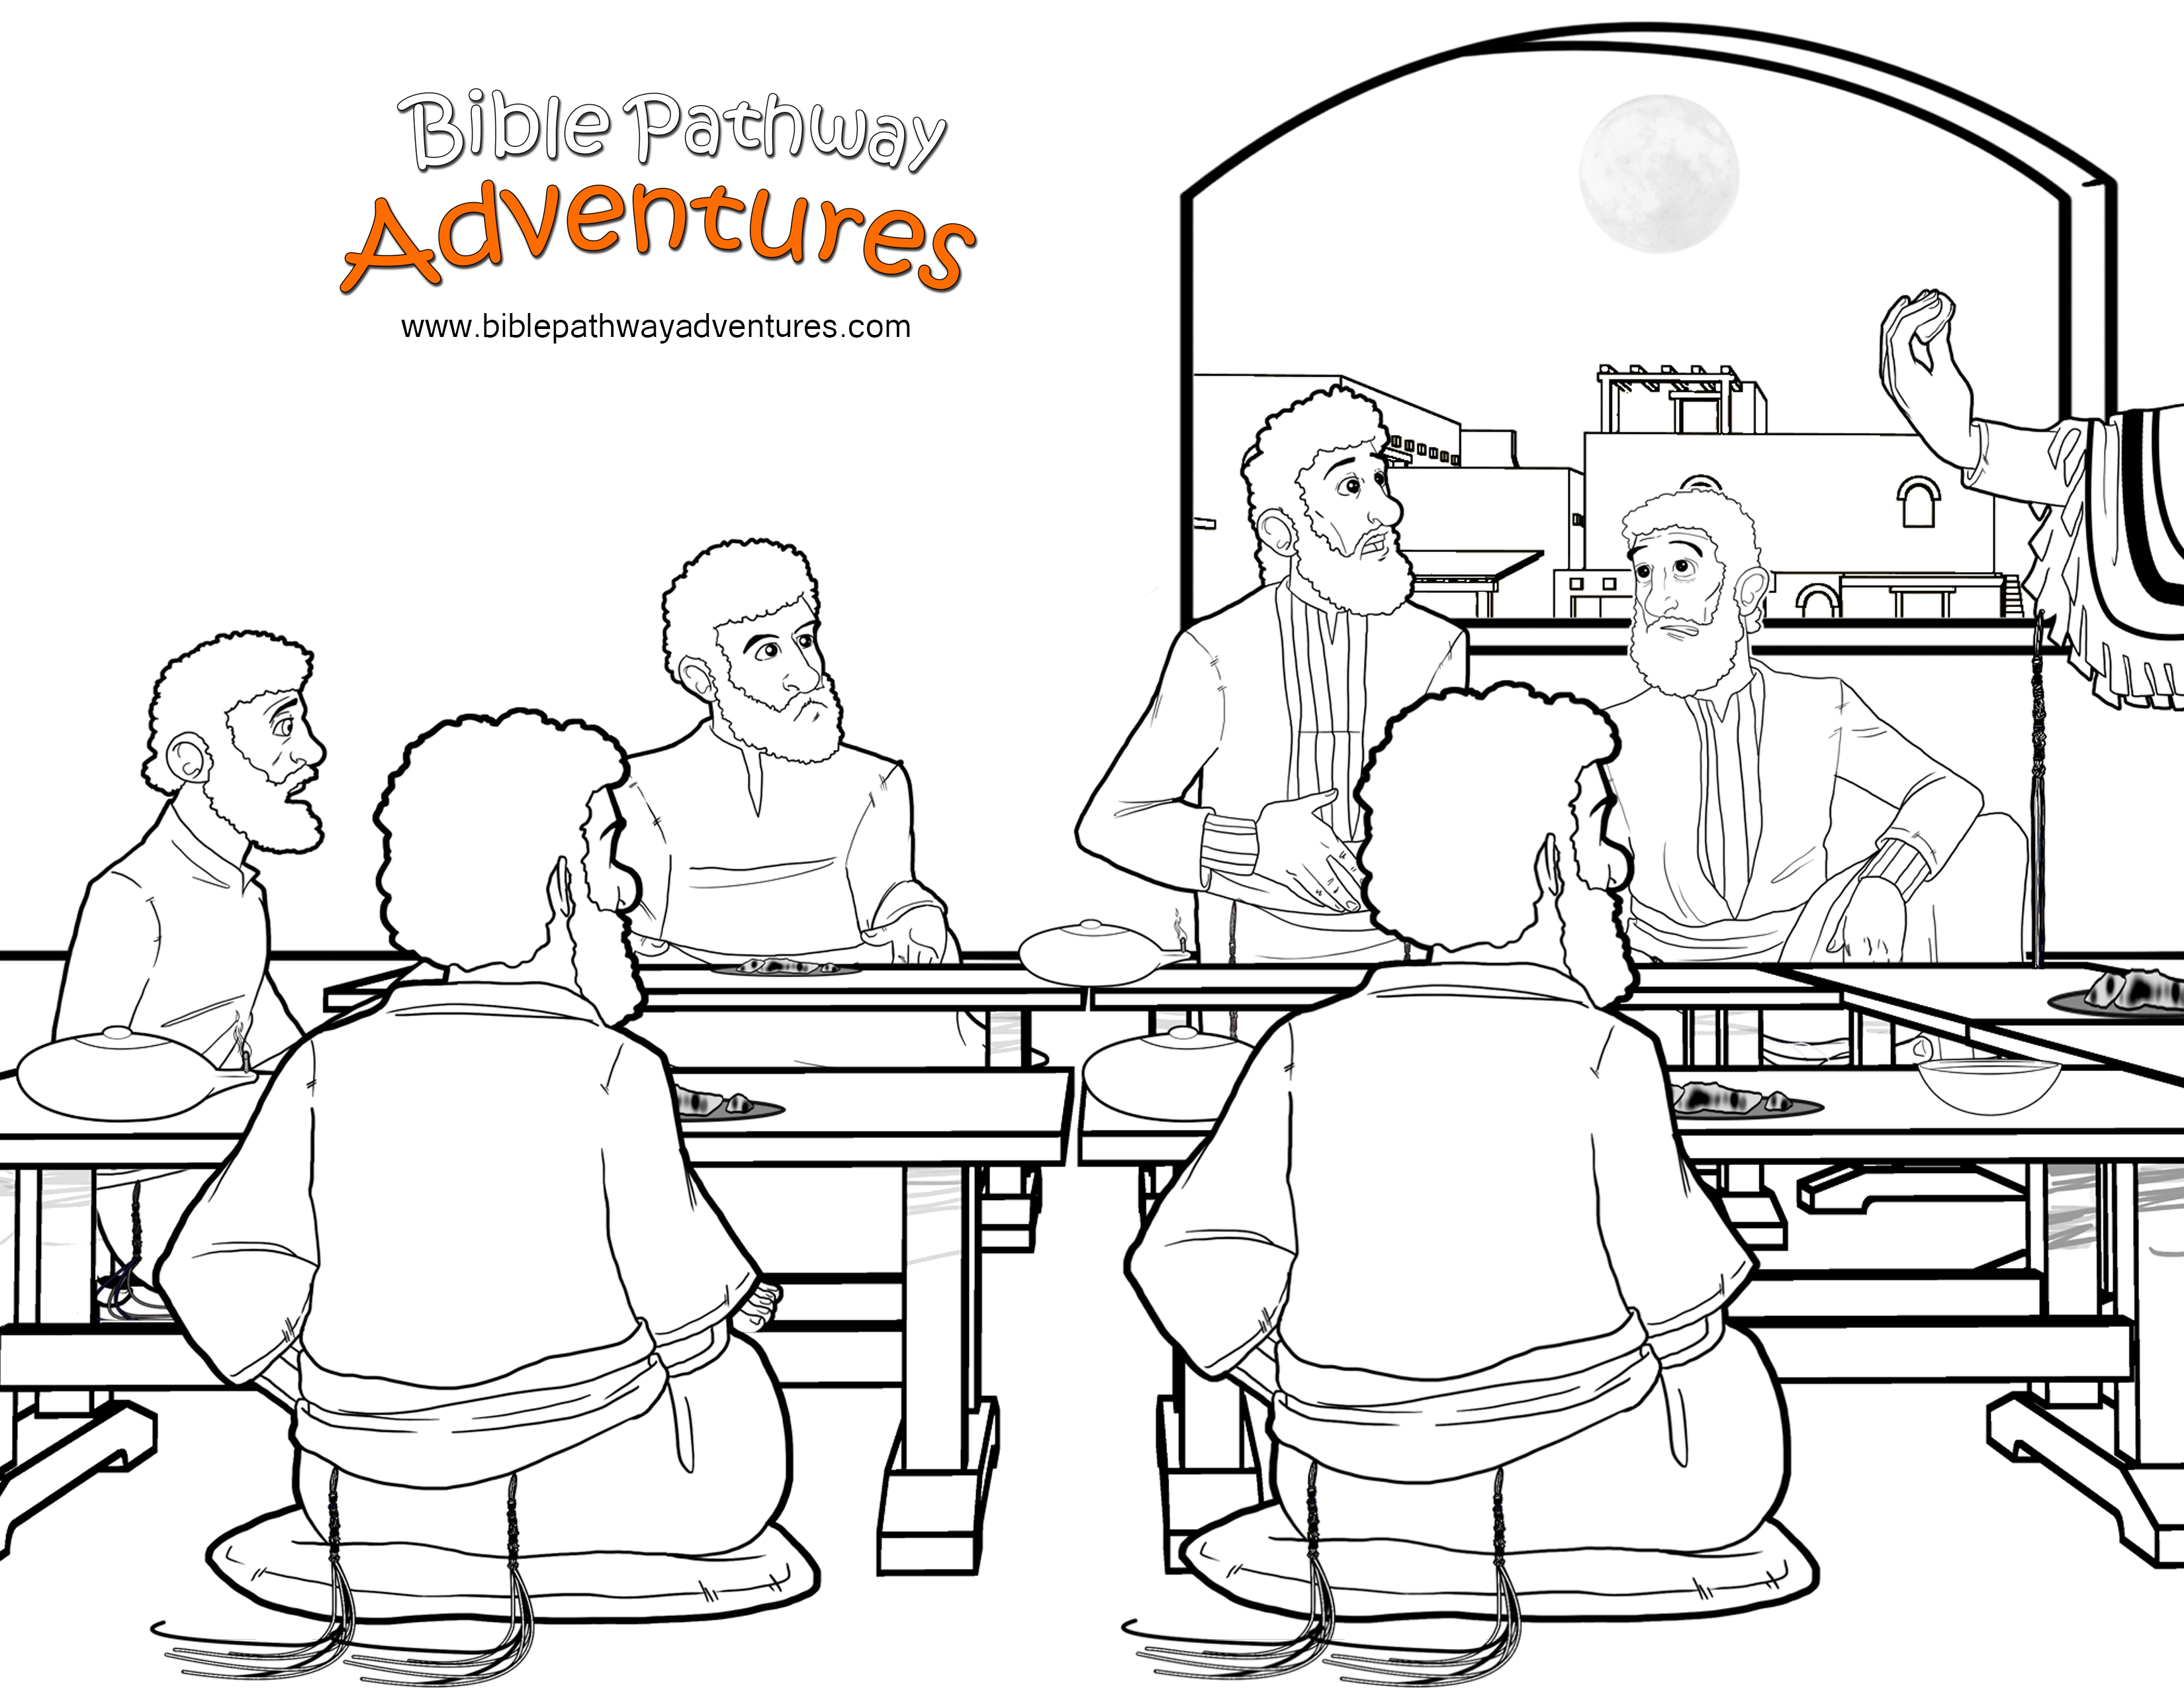 last supper coloring page jusus standing in the last supper coloring page kids page last supper coloring